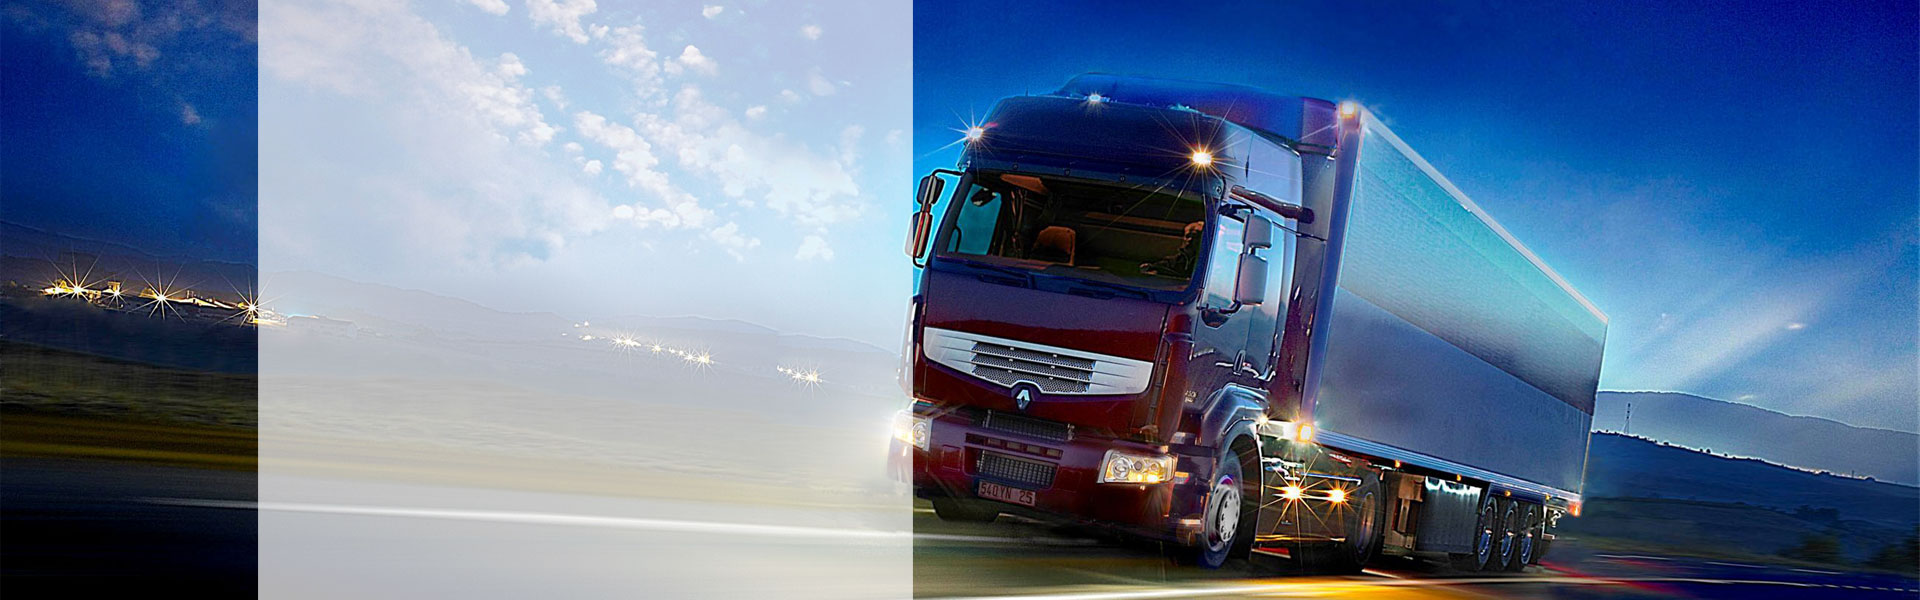 Various road transport services to and from all parts of the globe. Also providing domestic transportation management